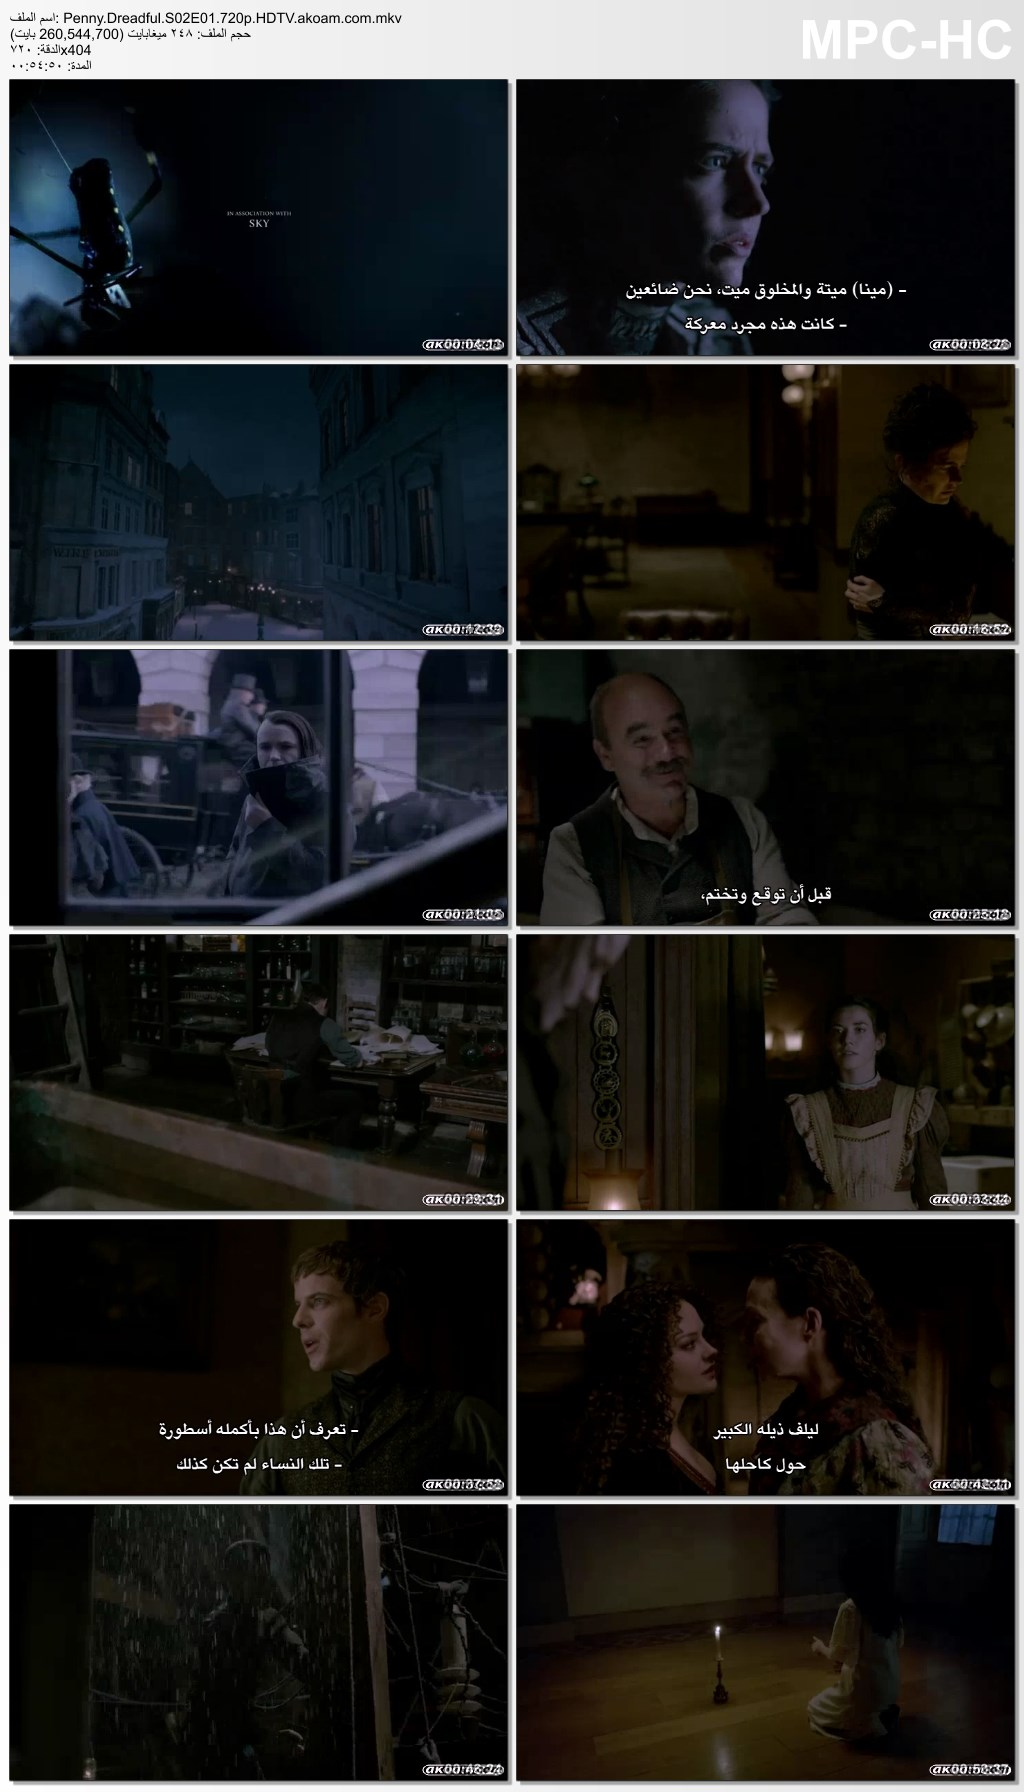 Penny Dreadful  2015,الدراما,الرعب,Penny Dreadful,Penny,Dreadful,الأكشن,2015,الموسم الثاني Penny Dreadful,Robert Nairne,Josh Hartnett,Timothy Dalton,Eva Green